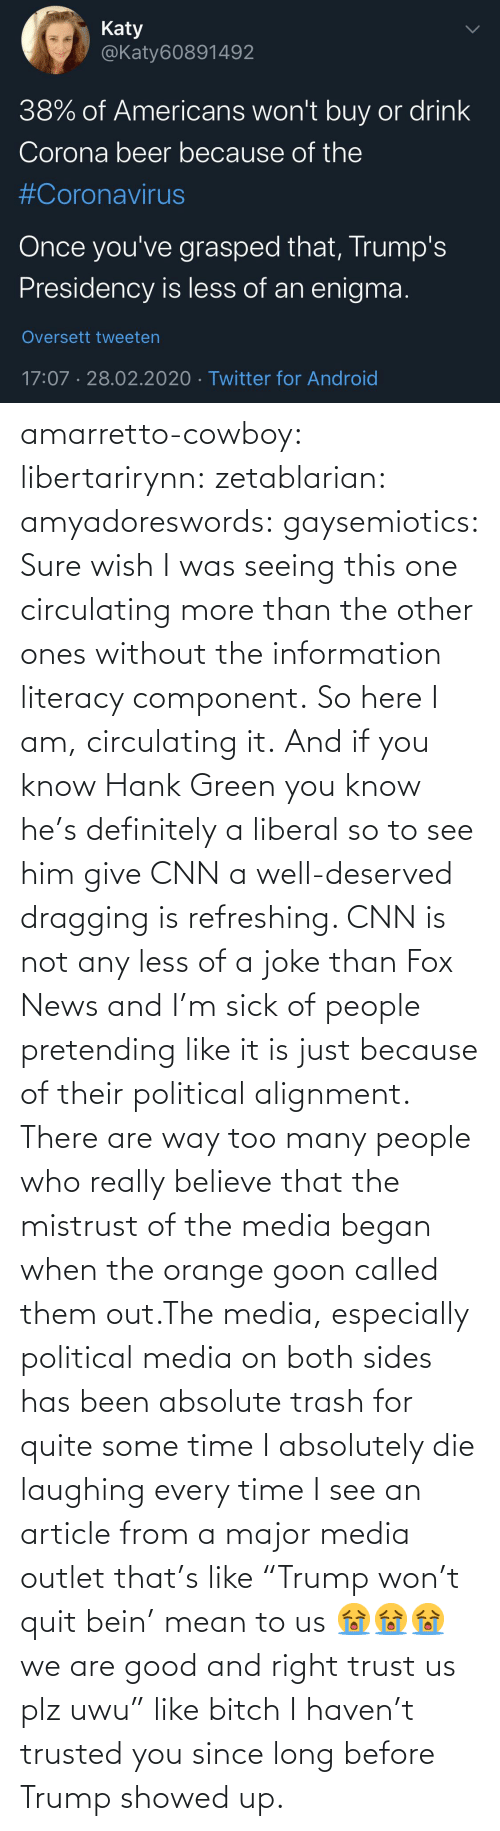 "Trump: amarretto-cowboy:  libertarirynn:  zetablarian:  amyadoreswords:   gaysemiotics:       Sure wish I was seeing this one circulating more than the other ones without the information literacy component. So here I am, circulating it.    And if you know Hank Green you know he's definitely a liberal so to see him give CNN a well-deserved dragging is refreshing. CNN is not any less of a joke than Fox News and I'm sick of people pretending like it is just because of their political alignment.   There are way too many people who really believe that the mistrust of the media began when the orange goon called them out.The media, especially political media on both sides has been absolute trash for quite some time   I absolutely die laughing every time I see an article from a major media outlet that's like ""Trump won't quit bein' mean to us 😭😭😭 we are good and right trust us plz uwu"" like bitch I haven't trusted you since long before Trump showed up."